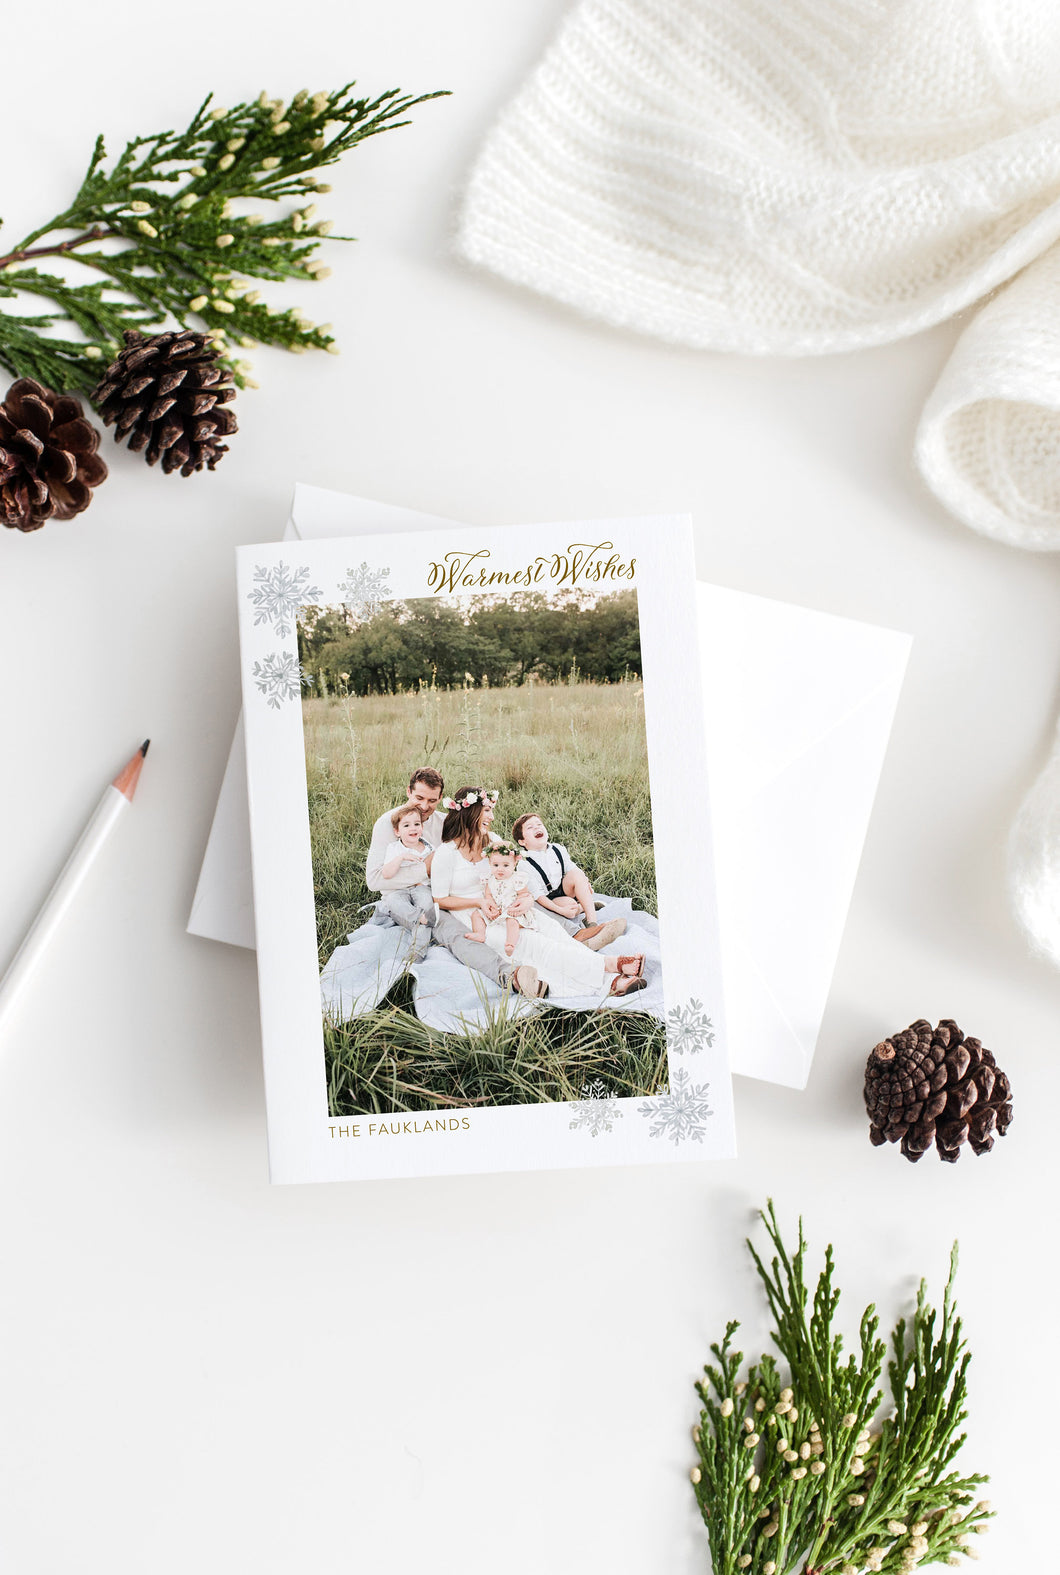 Christmas Card Couple Photo Christmas Card Modern Christmas Card Printed Christmas Cards Greenery Gold